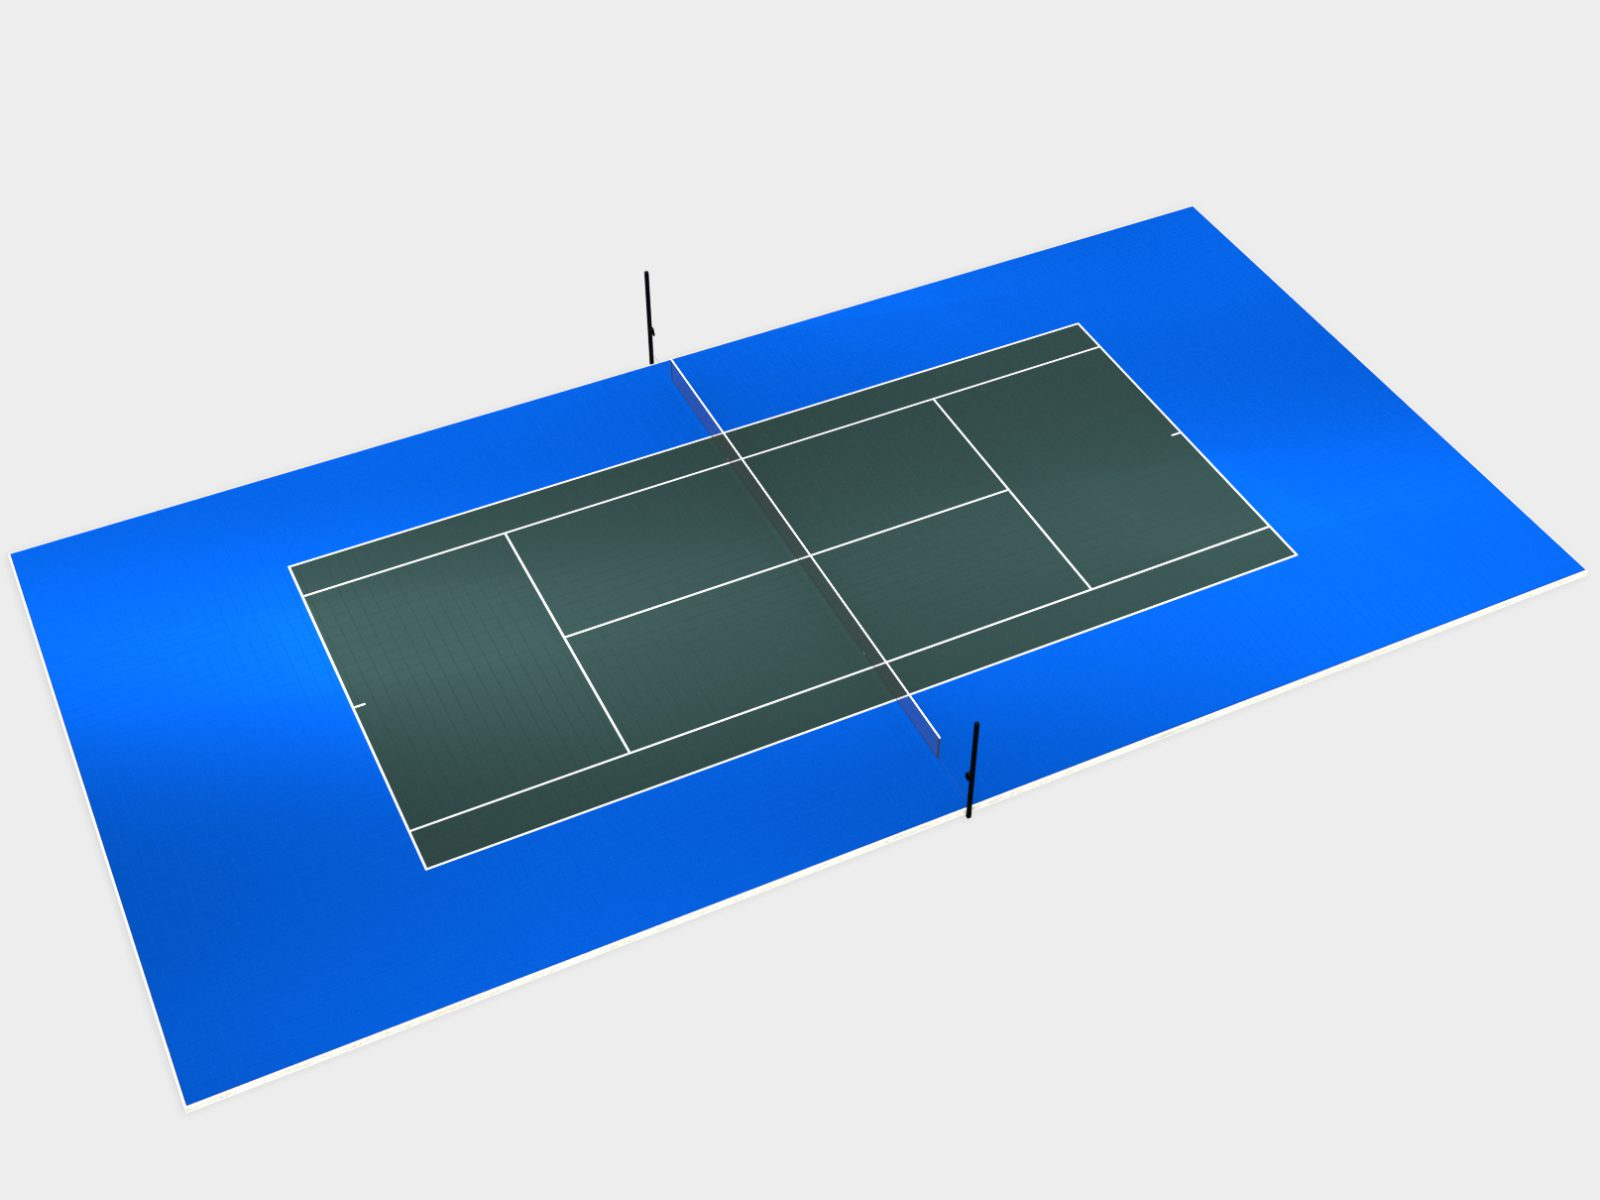 DunkStar 120' x 60' Tennis Court